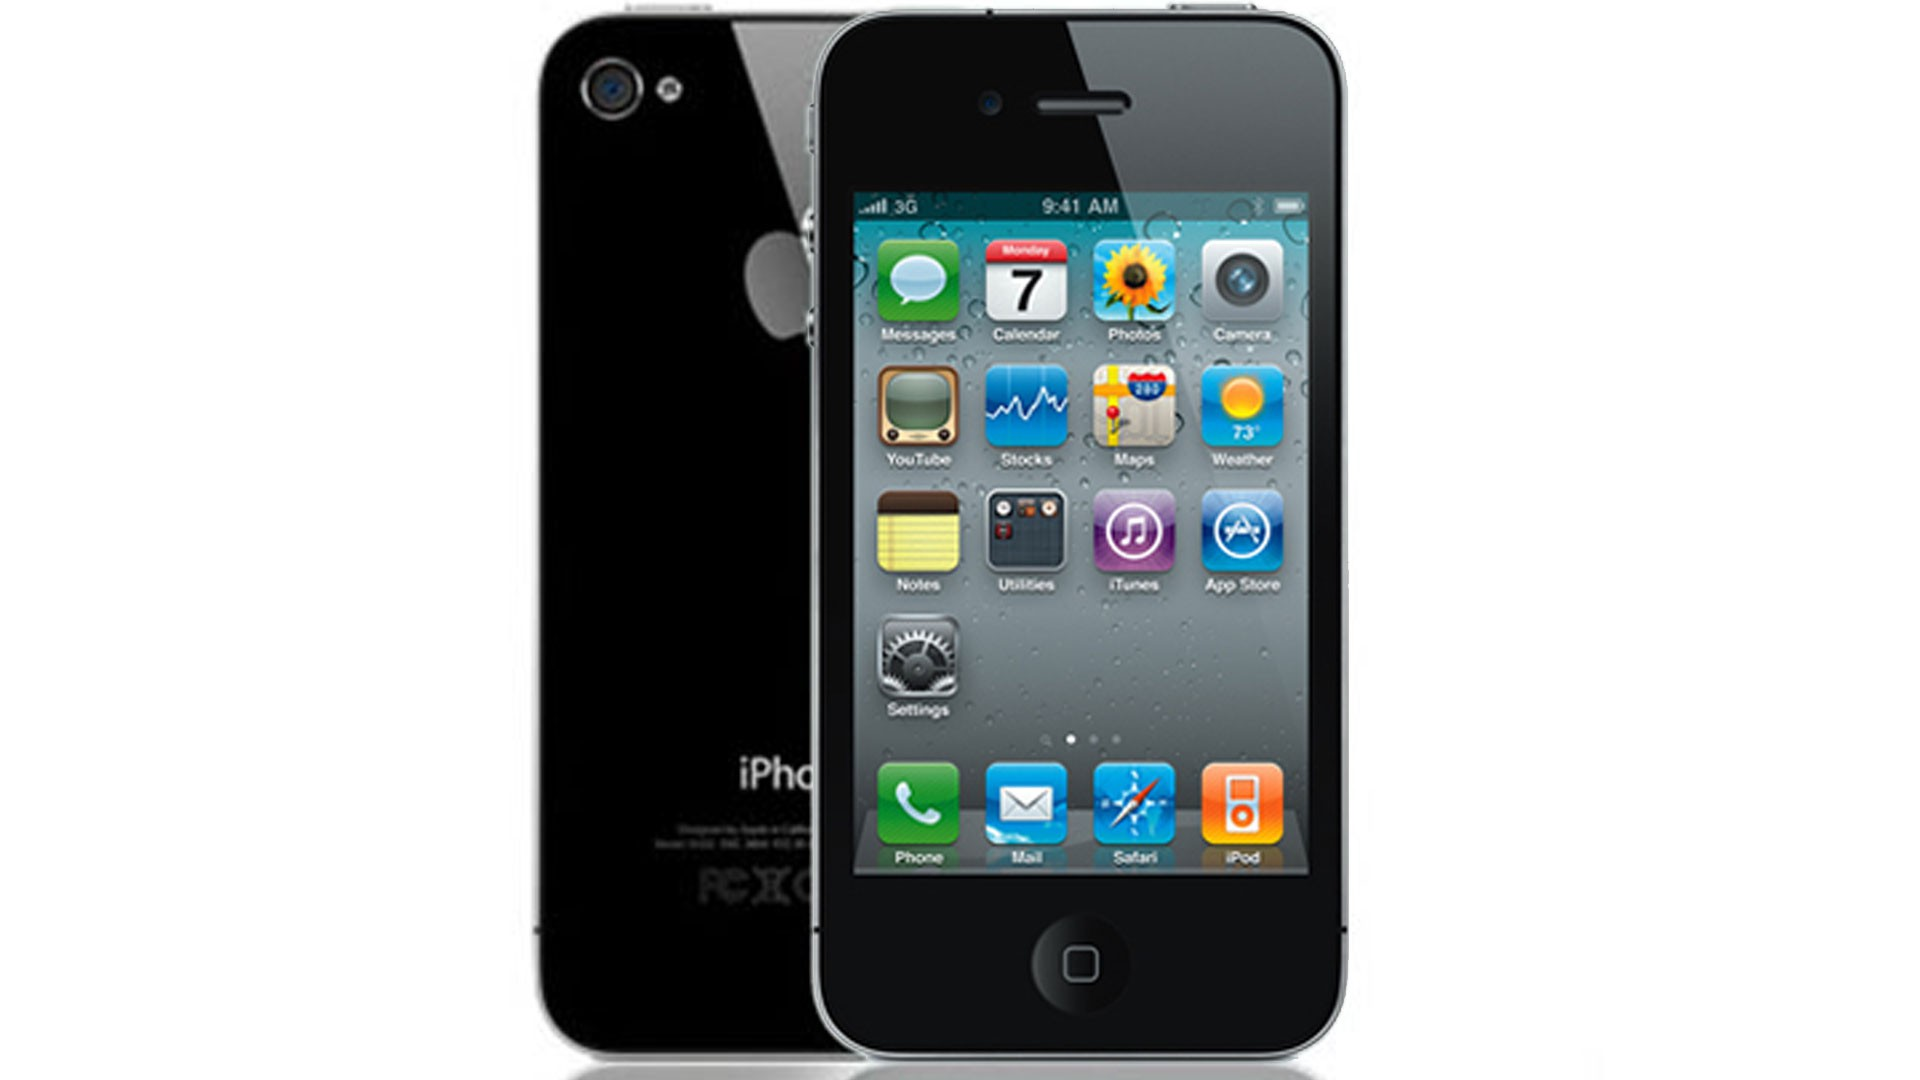 Iphone Mobile Apple Iphone 4s 8gb Smartphone T Mobile Black